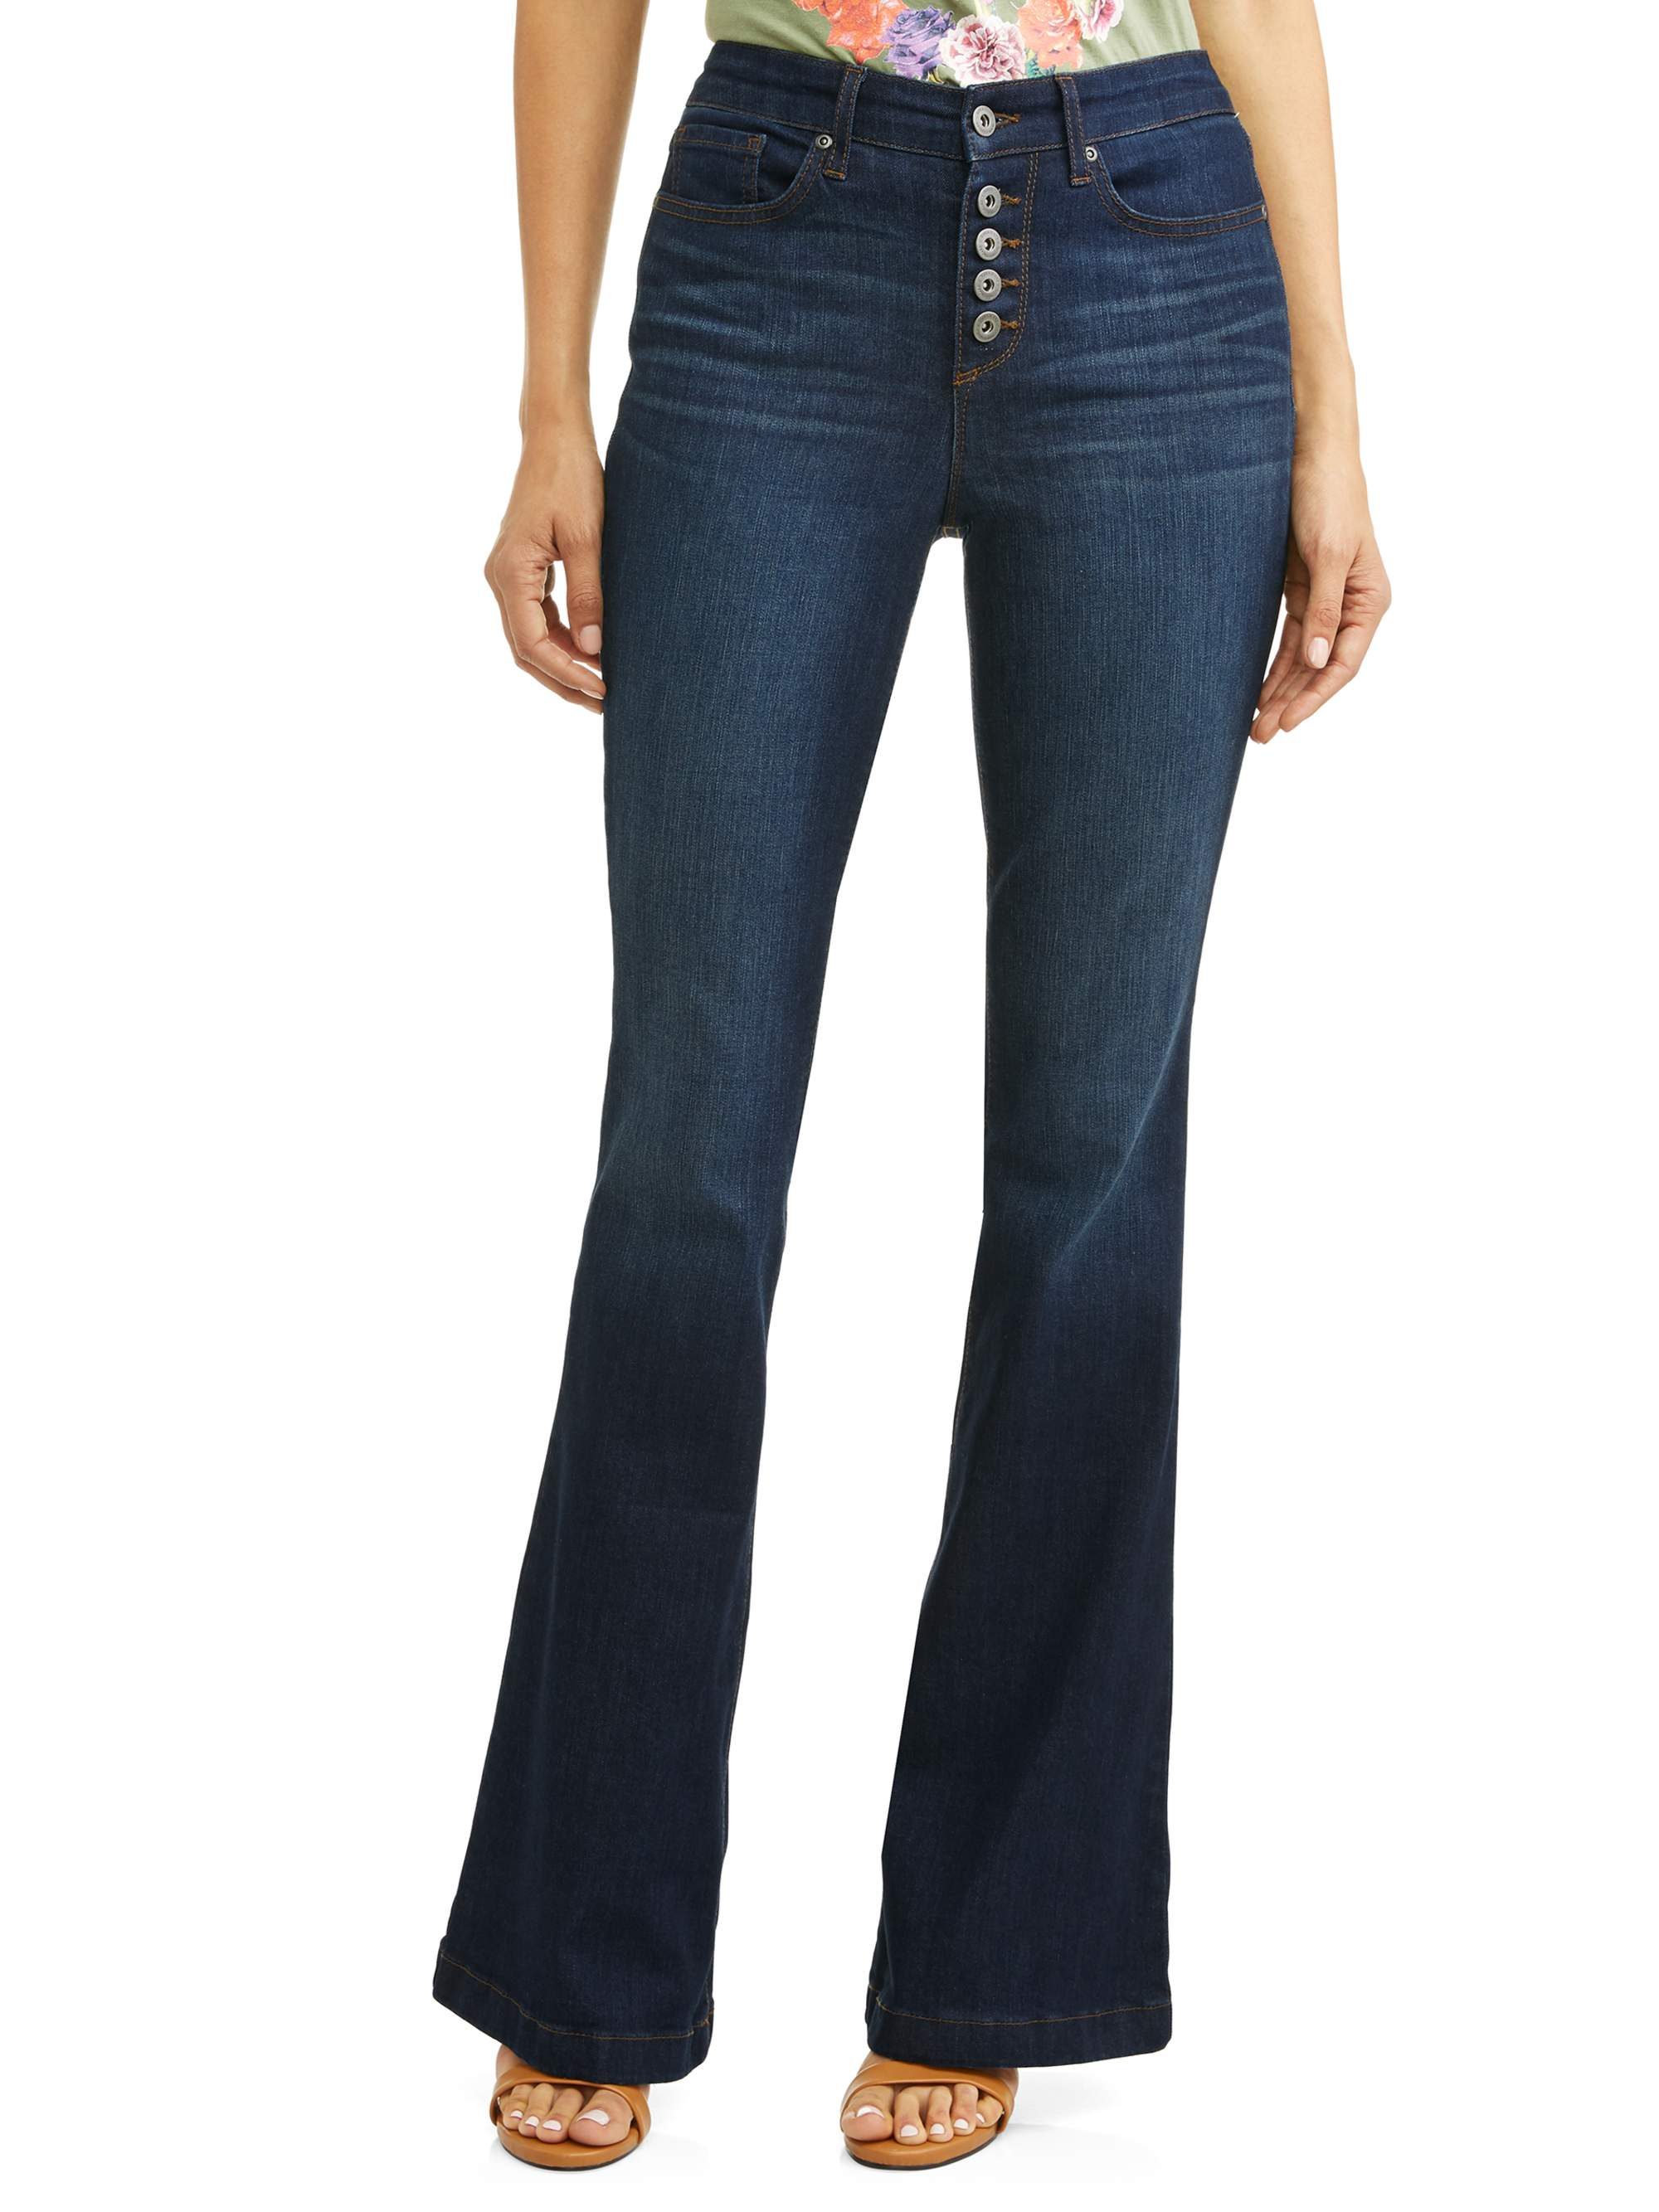 Sofía Jeans by Sofía Vergara, Melisa High Waist Stretch Flare Jean Women's (Dark Indigo Wash)